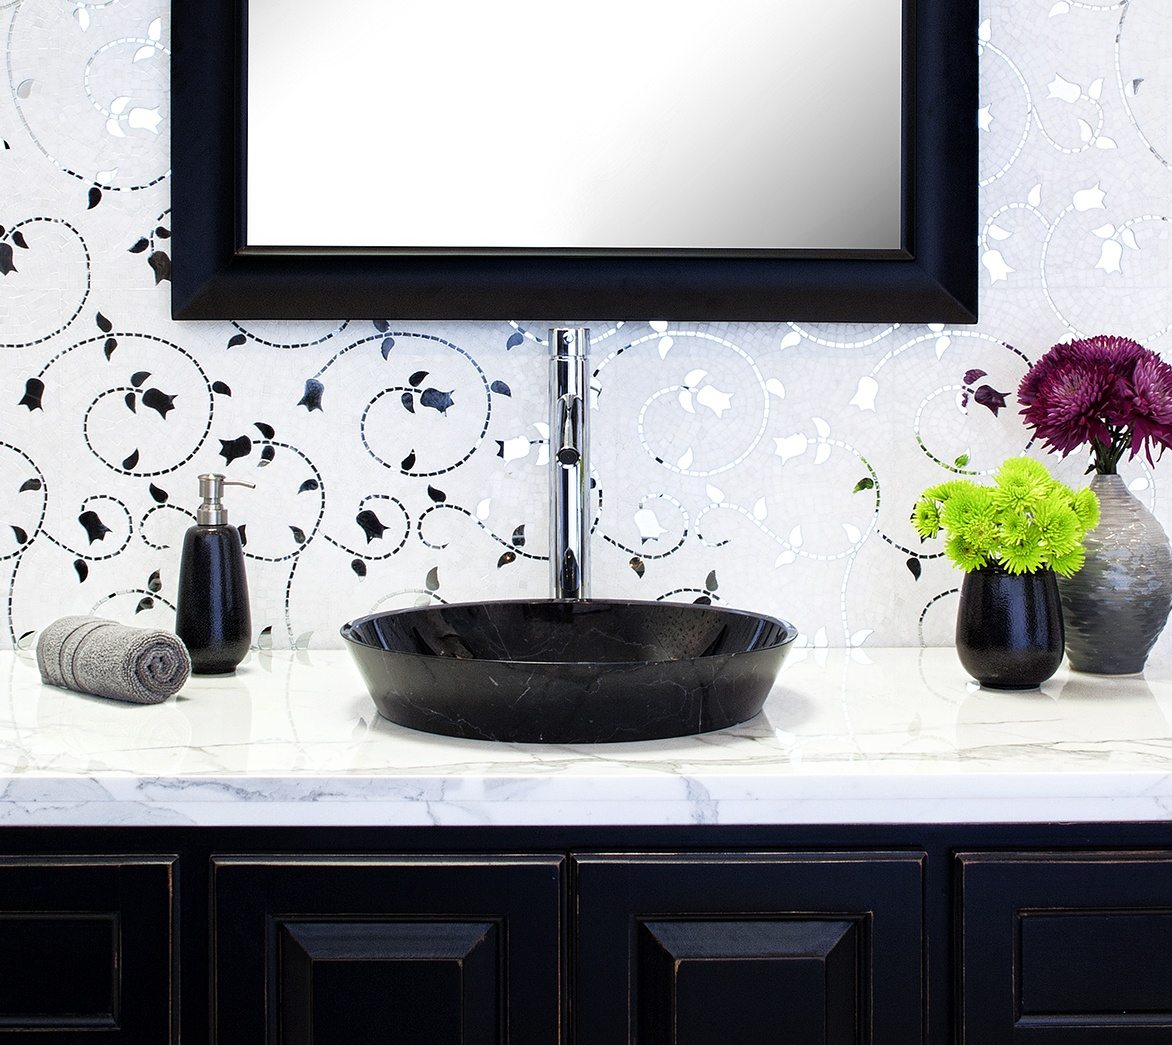 The Tulip pattern in mirror and stone creates a dazzling effect in this bath.